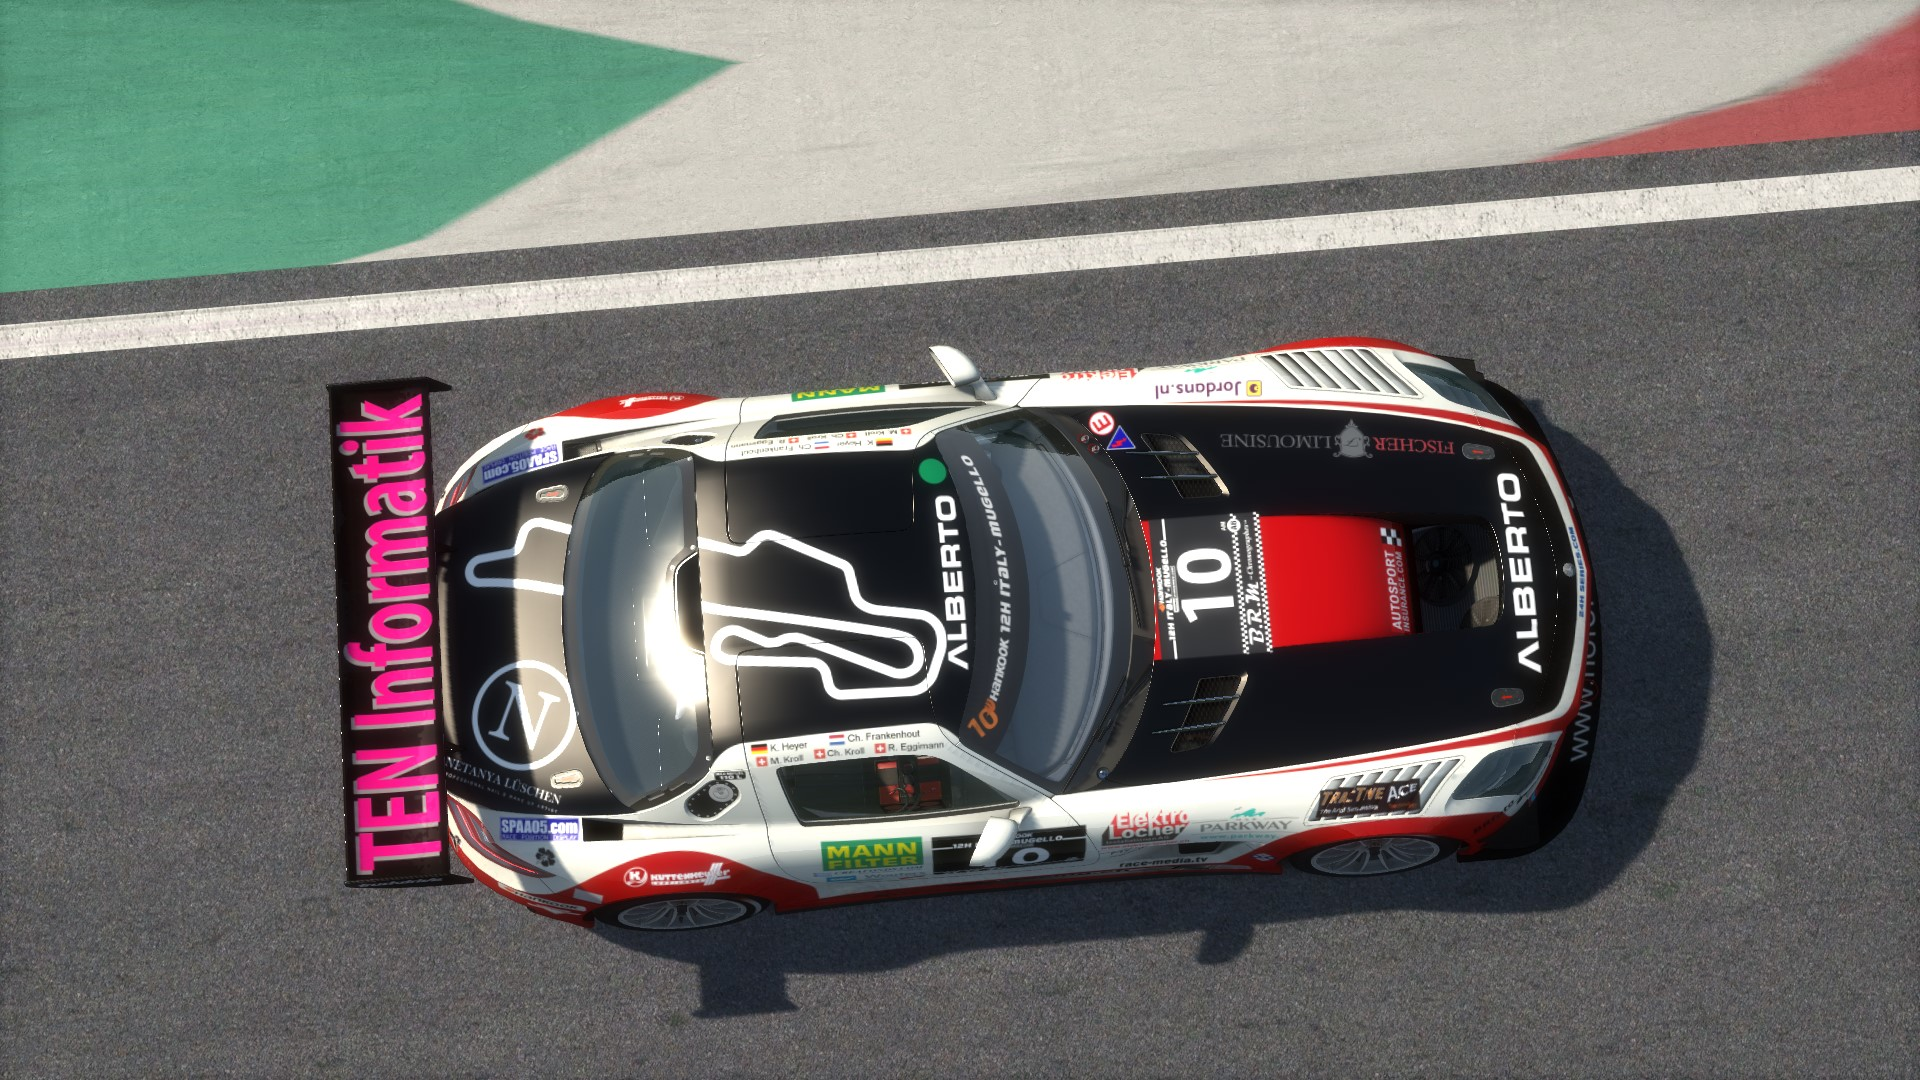 Screenshot_mercedes_sls_gt3_mugello_7-8-115-16-39-57.jpg